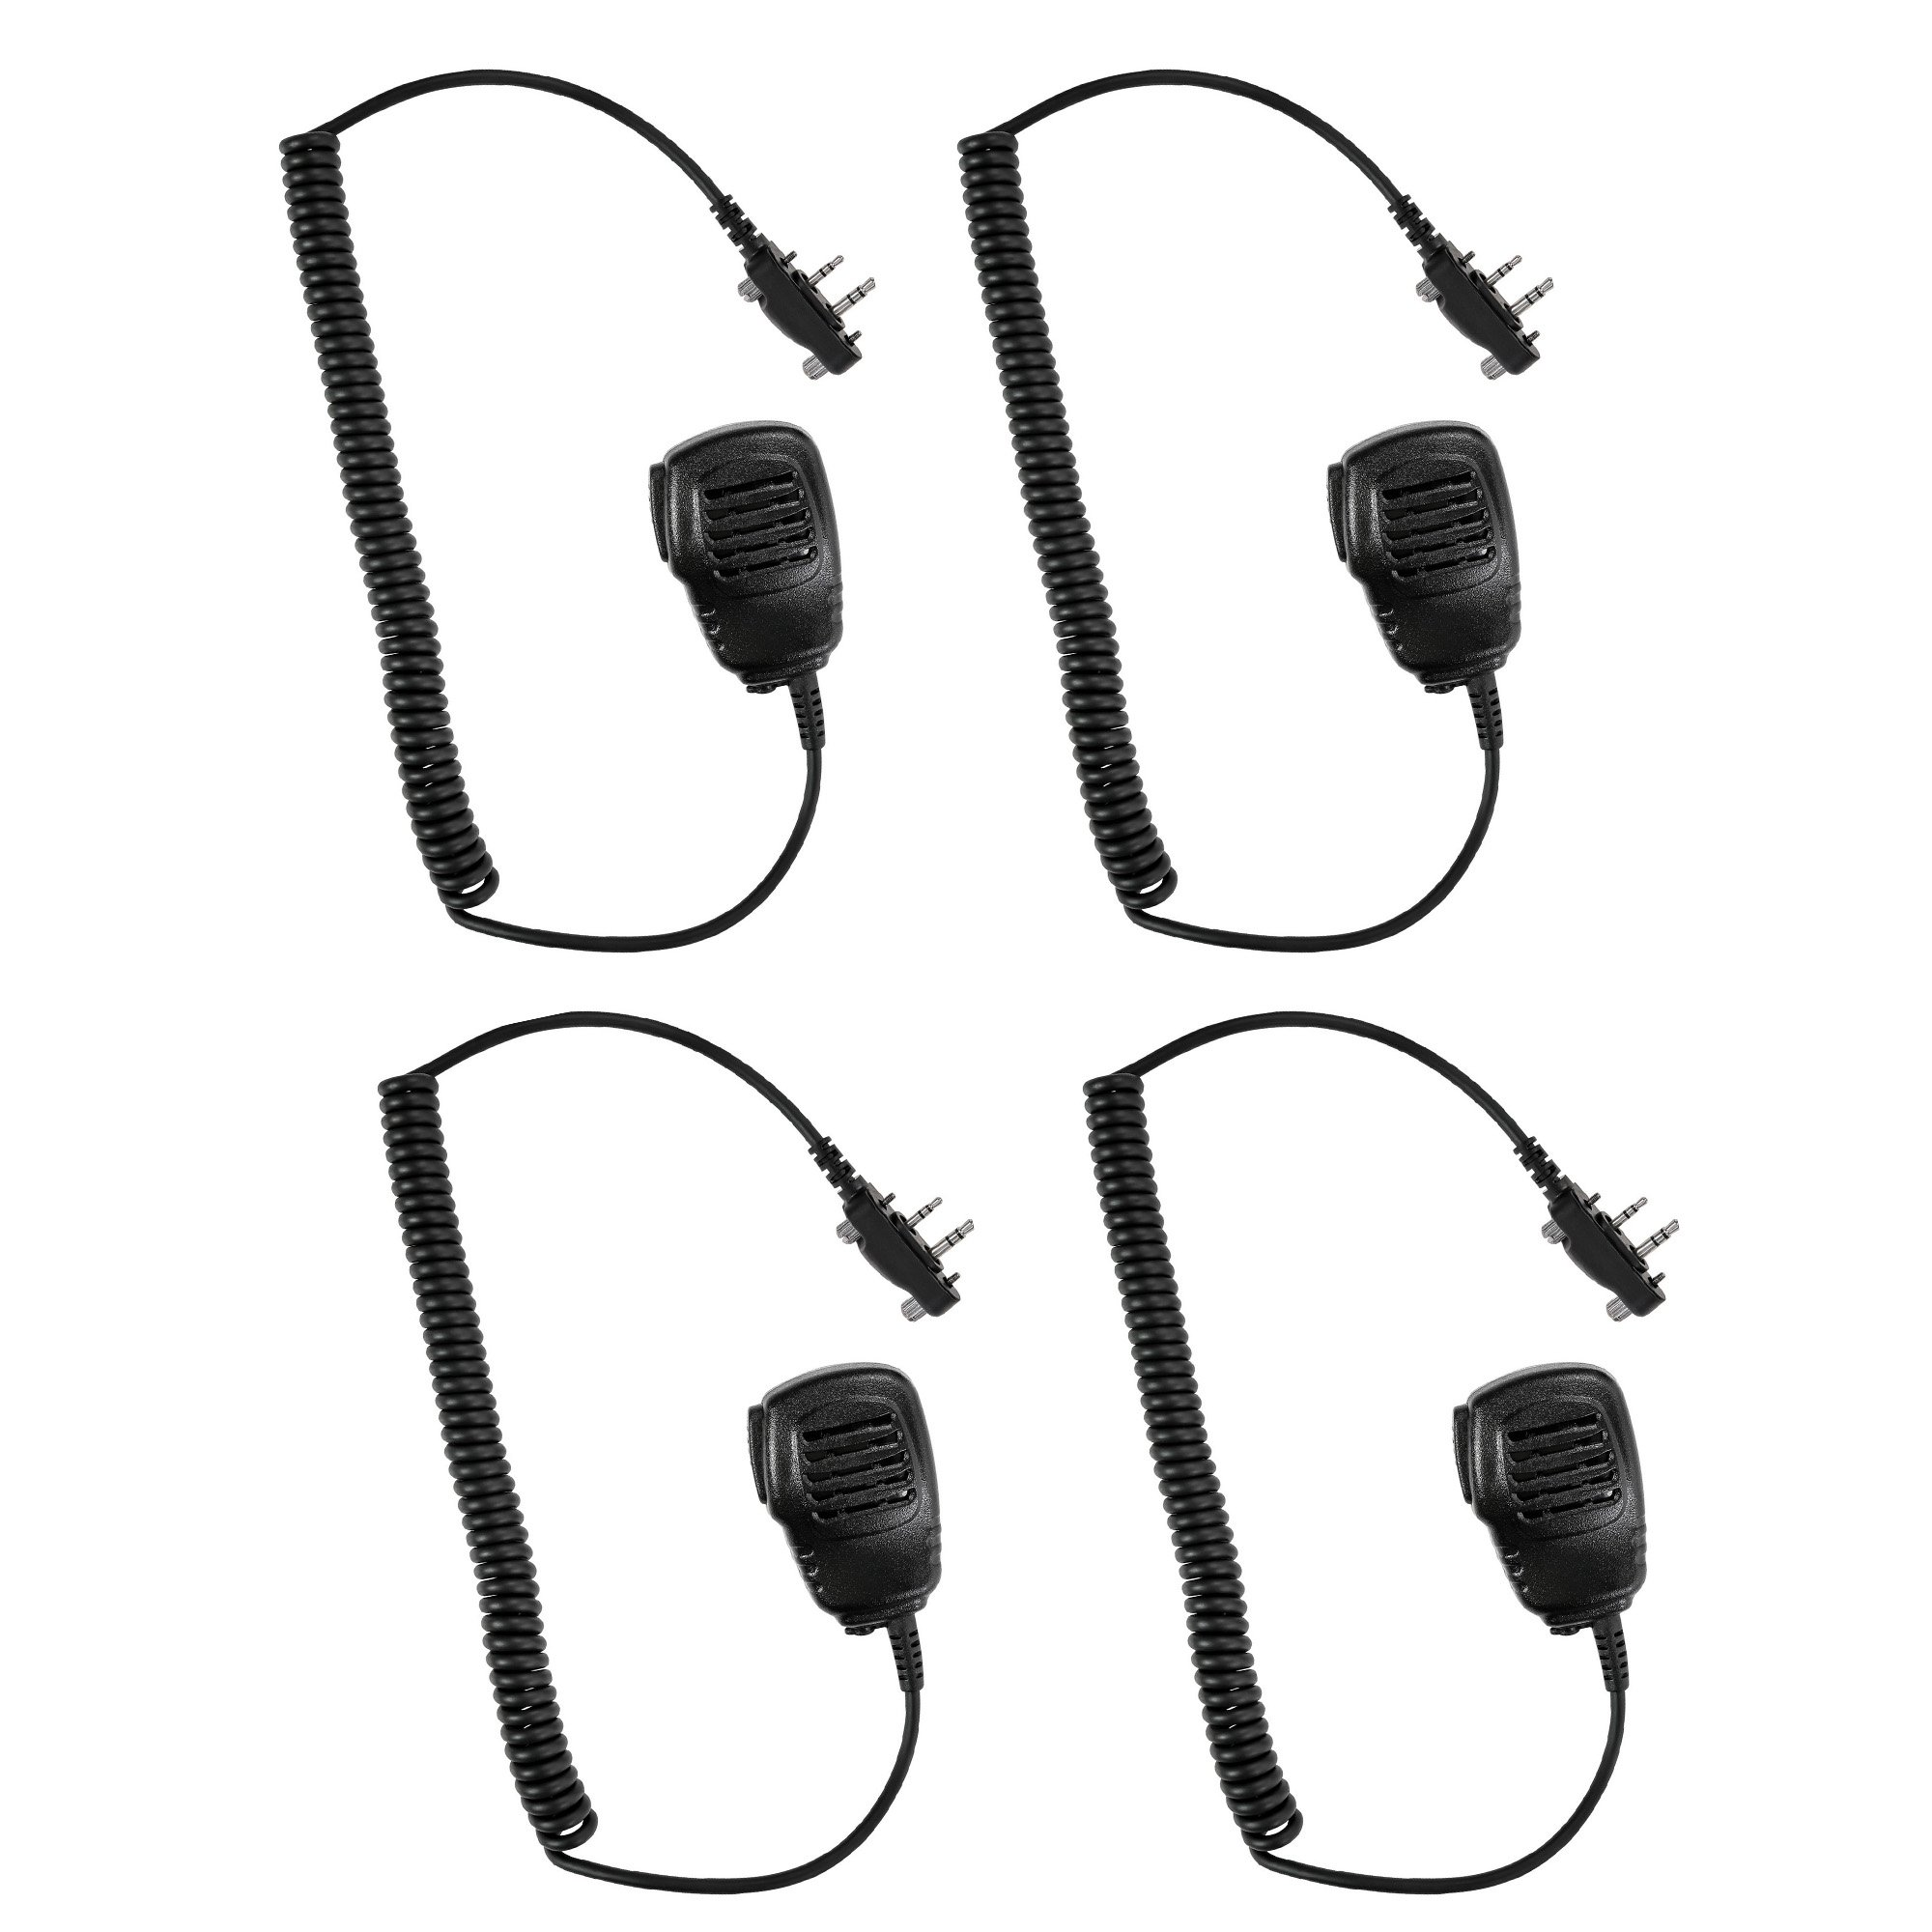 4 Pack Maxtop APM100-I2 Light Duty Shoulder Speaker Microphone for ICOM IC-F3011 IC-F4011 IC-F3021 IC-F4021 IC-F3062